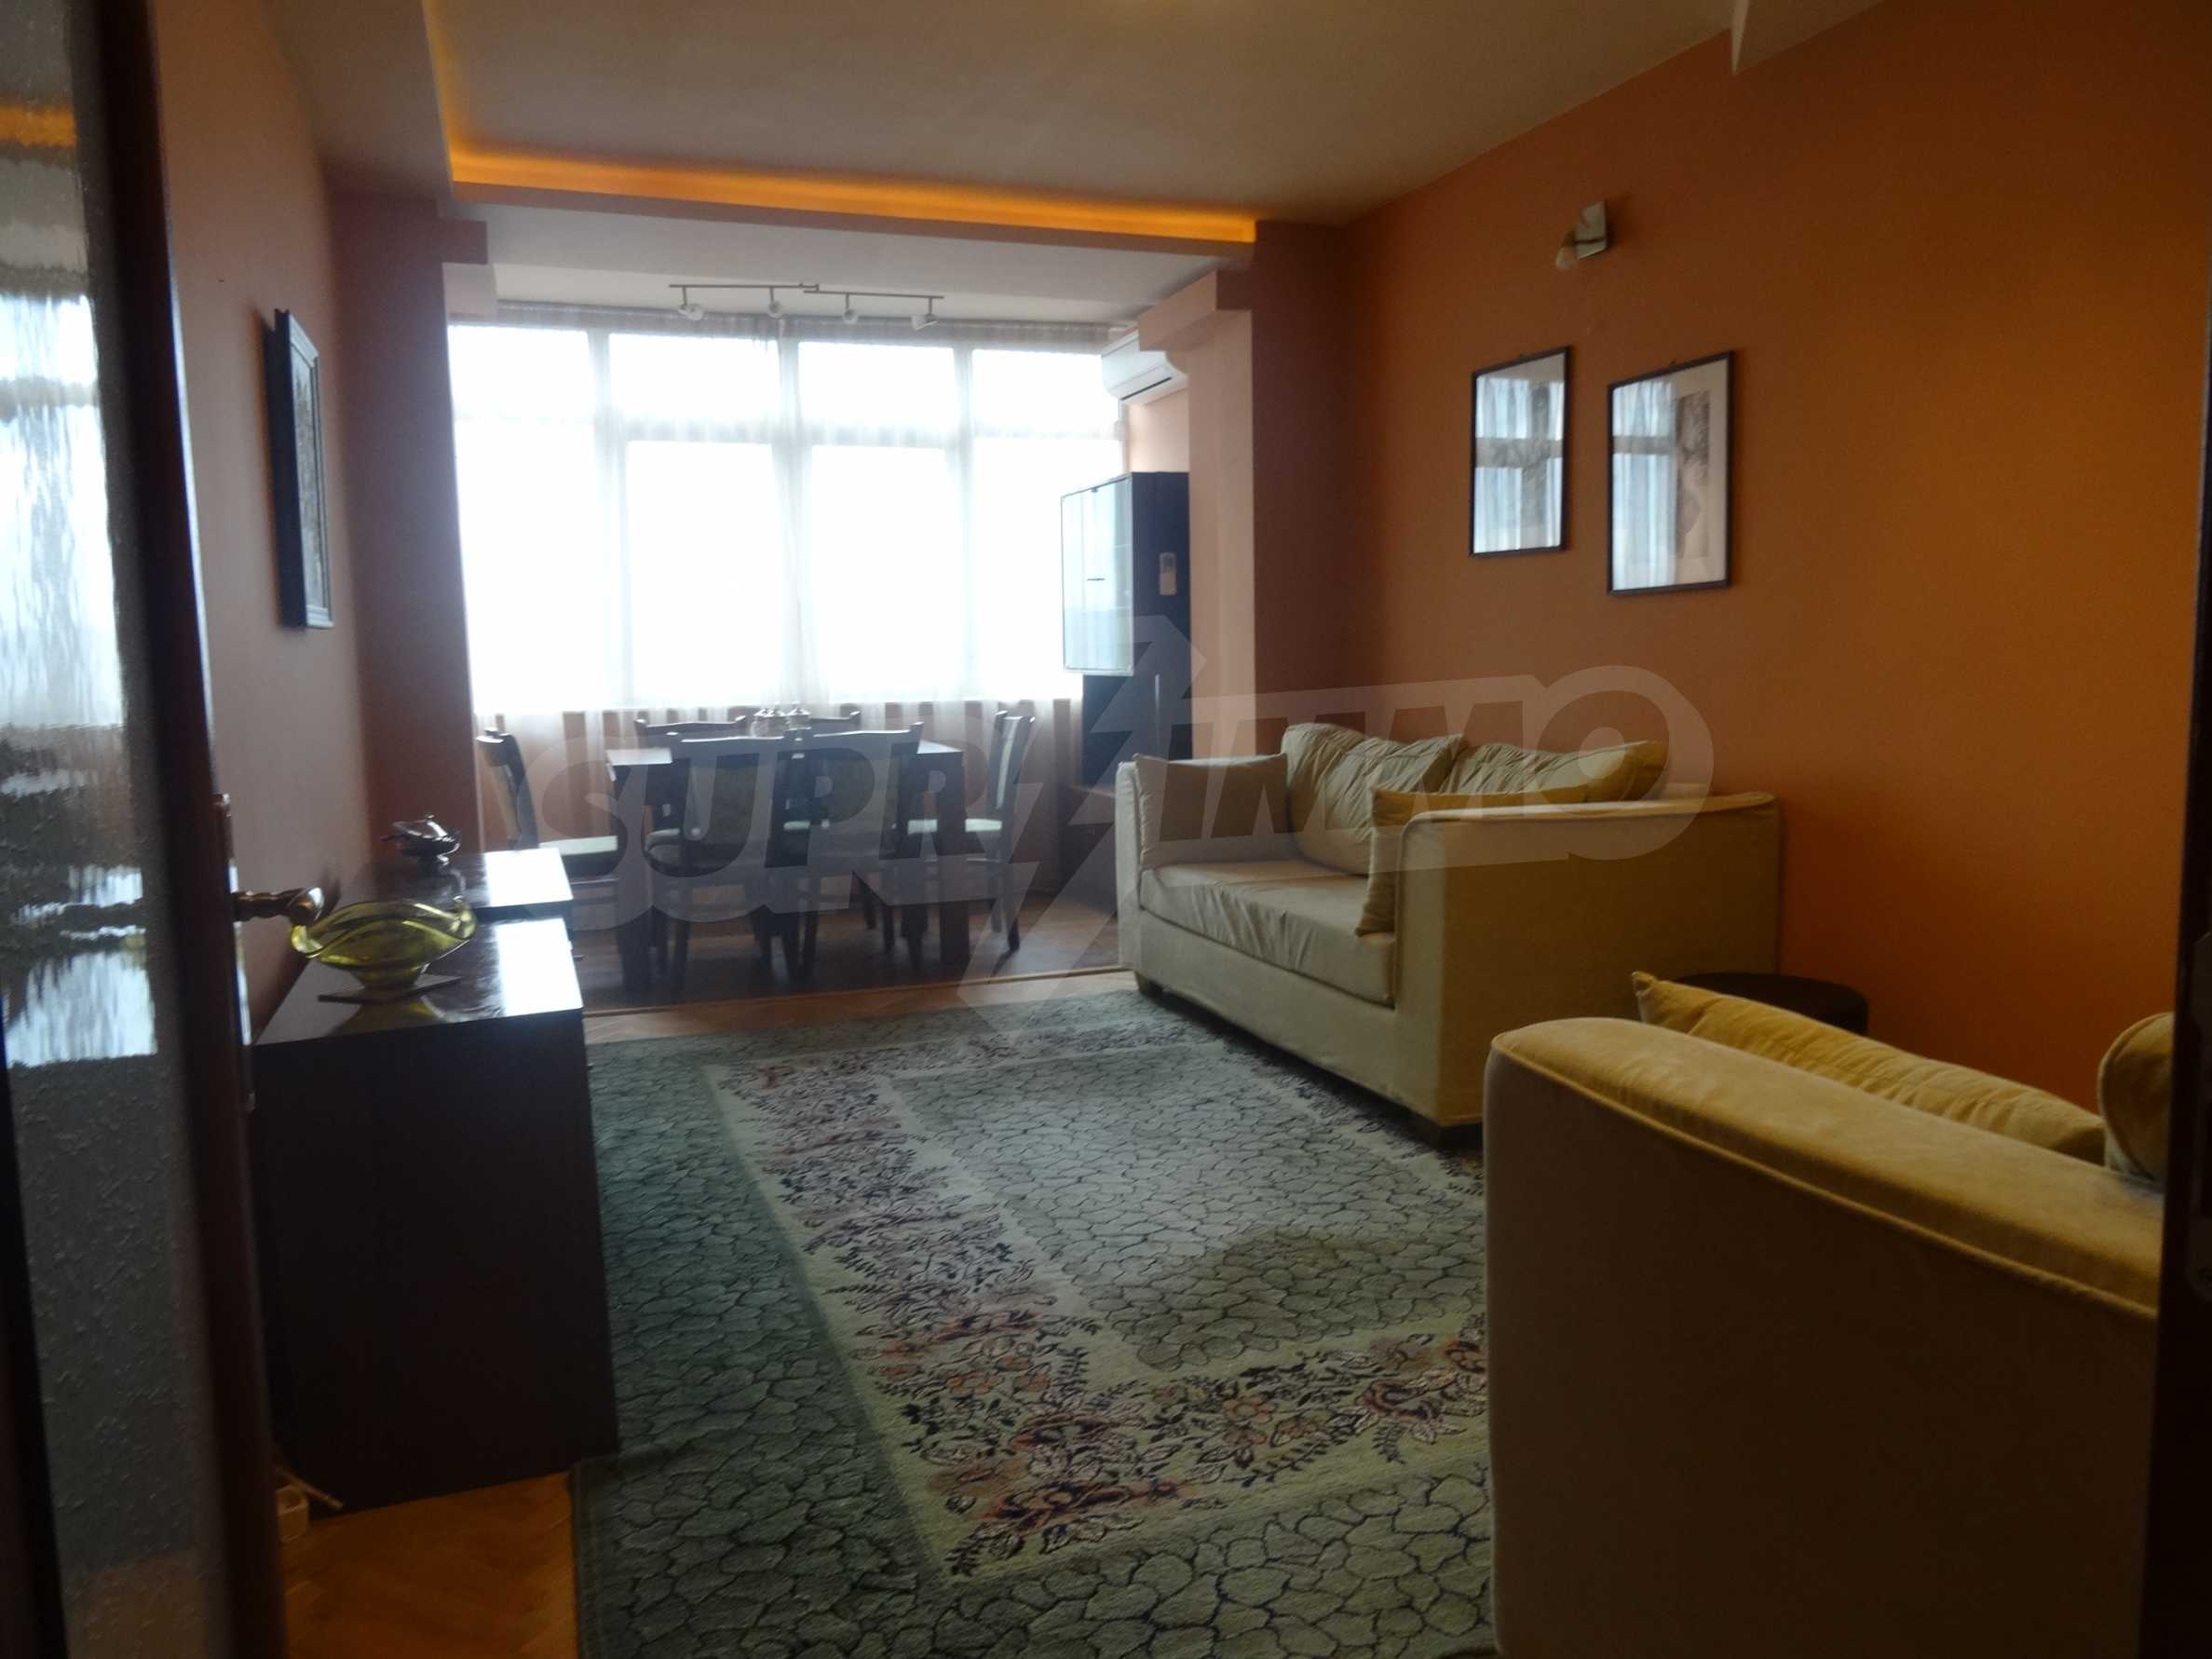 2-bedroom apartment for rent in Varna, Bulgaria - Rentals - 2-bedroom apartment.